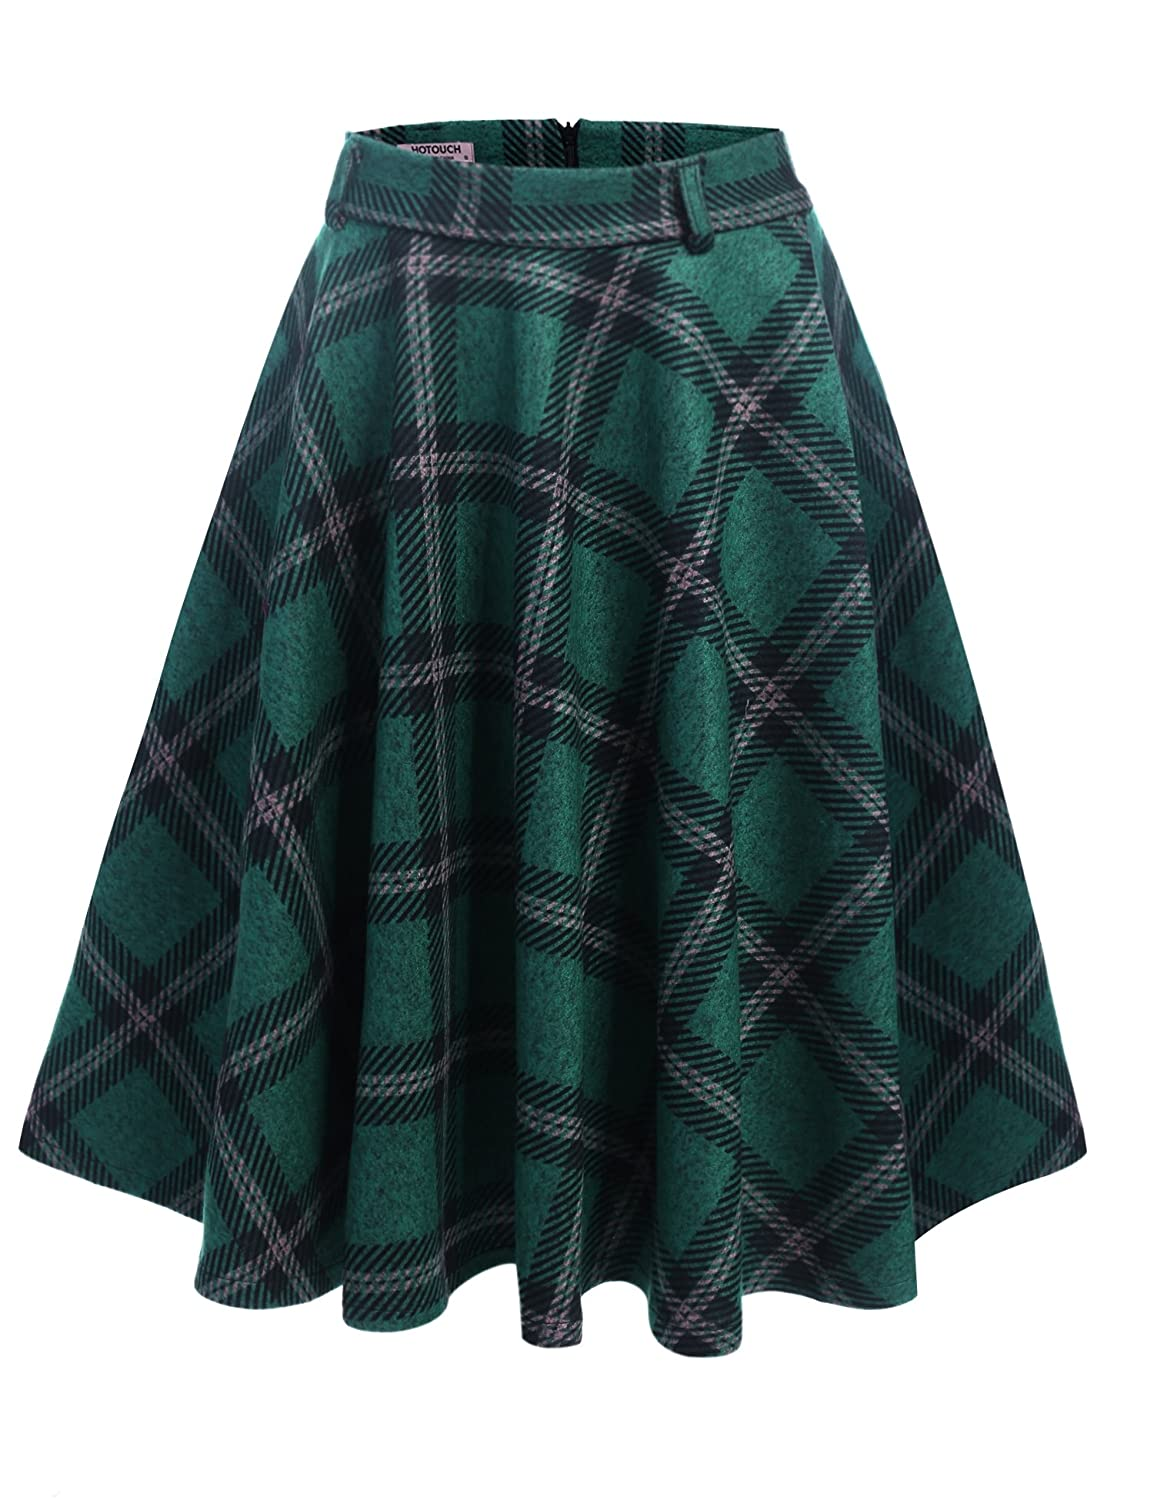 1960s Style Skirts HOTOUCH Women High Waist A Line Pleated Flared Plaid Swing Knee Skirts $27.99 AT vintagedancer.com